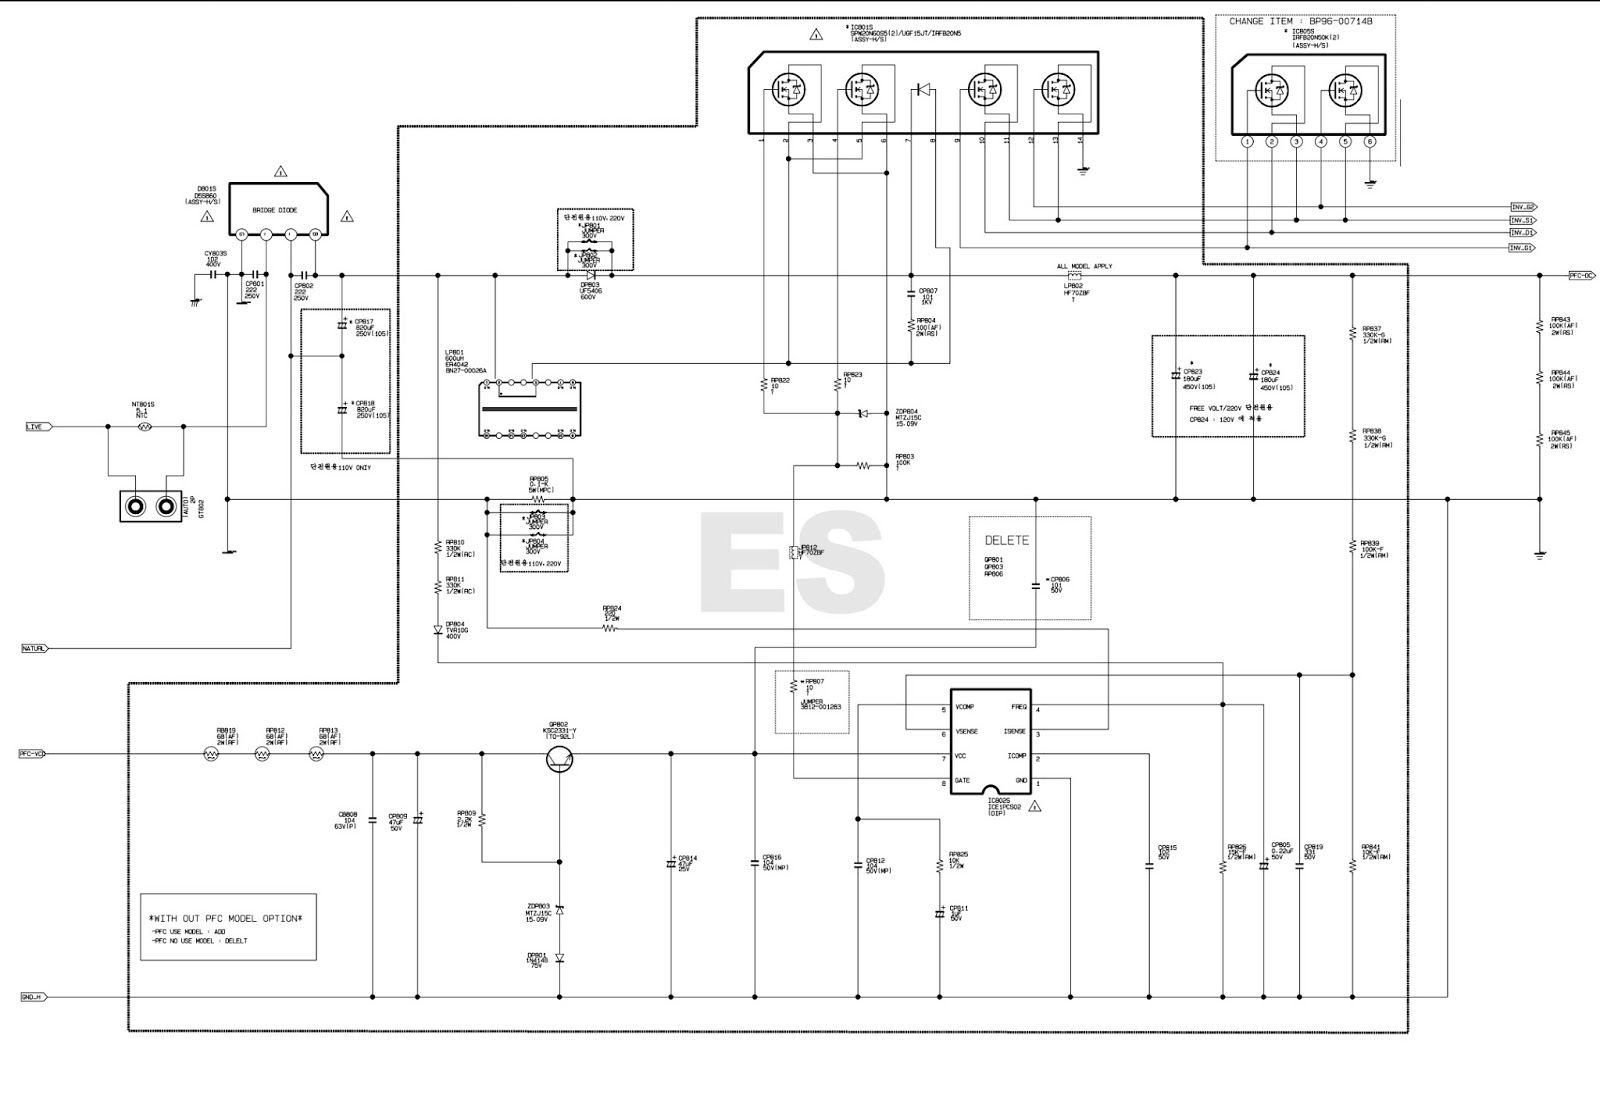 Electronic Equipment Repair Centre Samsung Bn44 00622b Power Circuit Service Manual Tv Schematic Diagrams Led Supply Board Diagram Viper12a Str W6765 Ice1pcs02 Lcd Television And